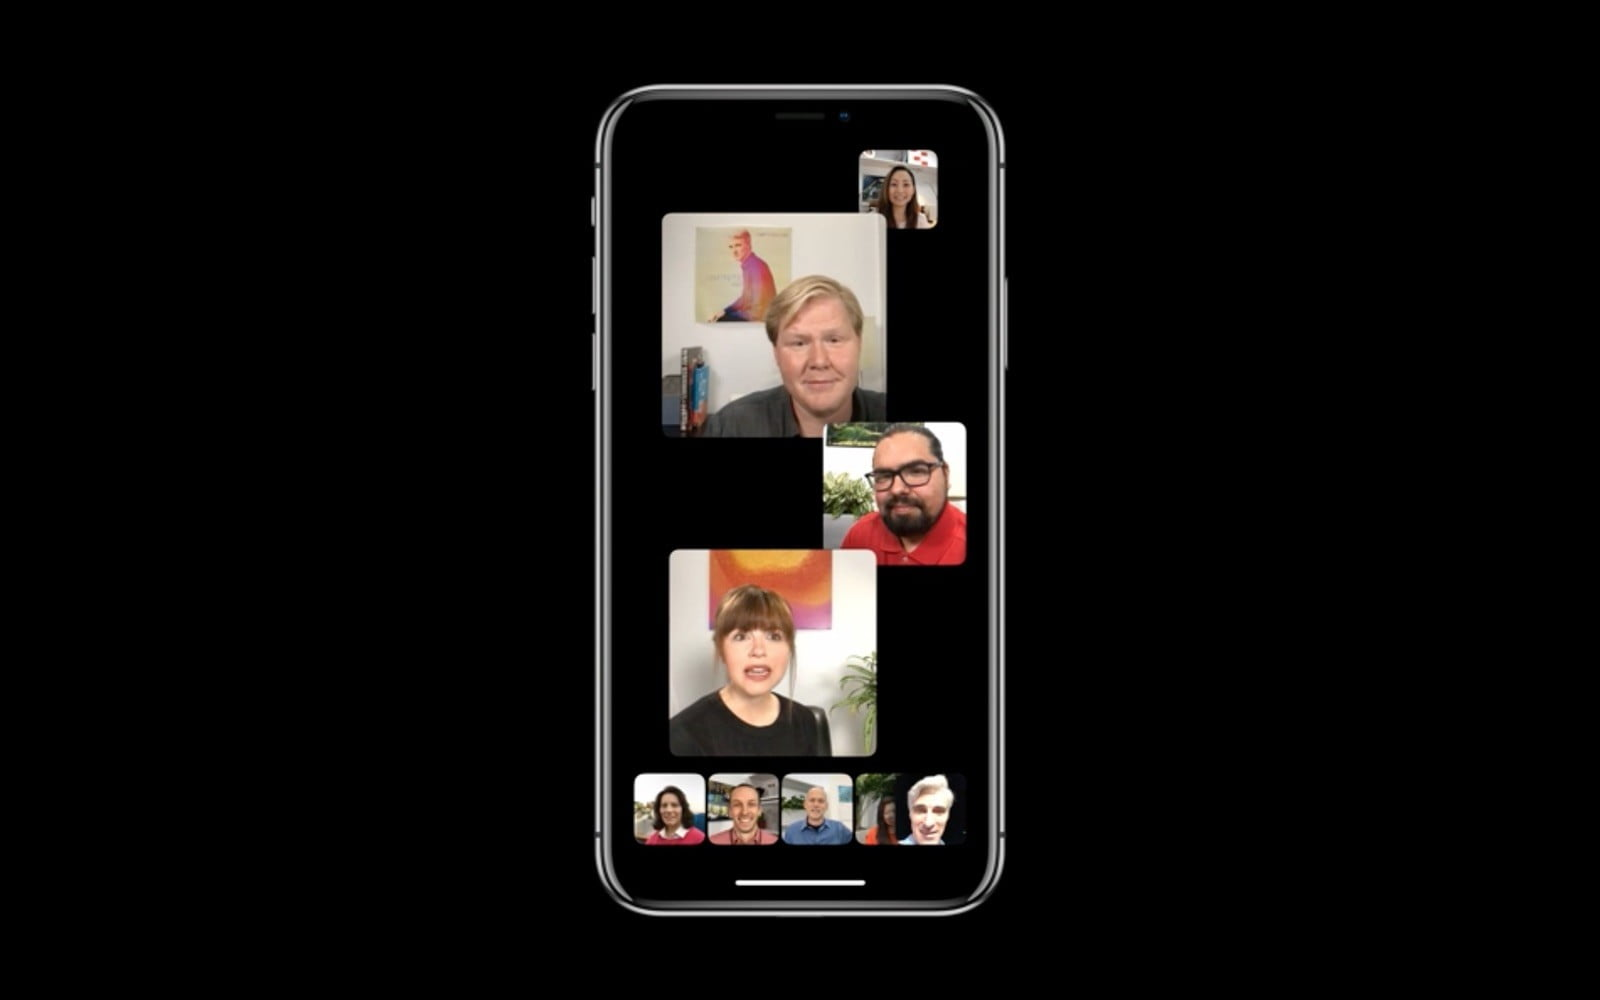 group face time chat